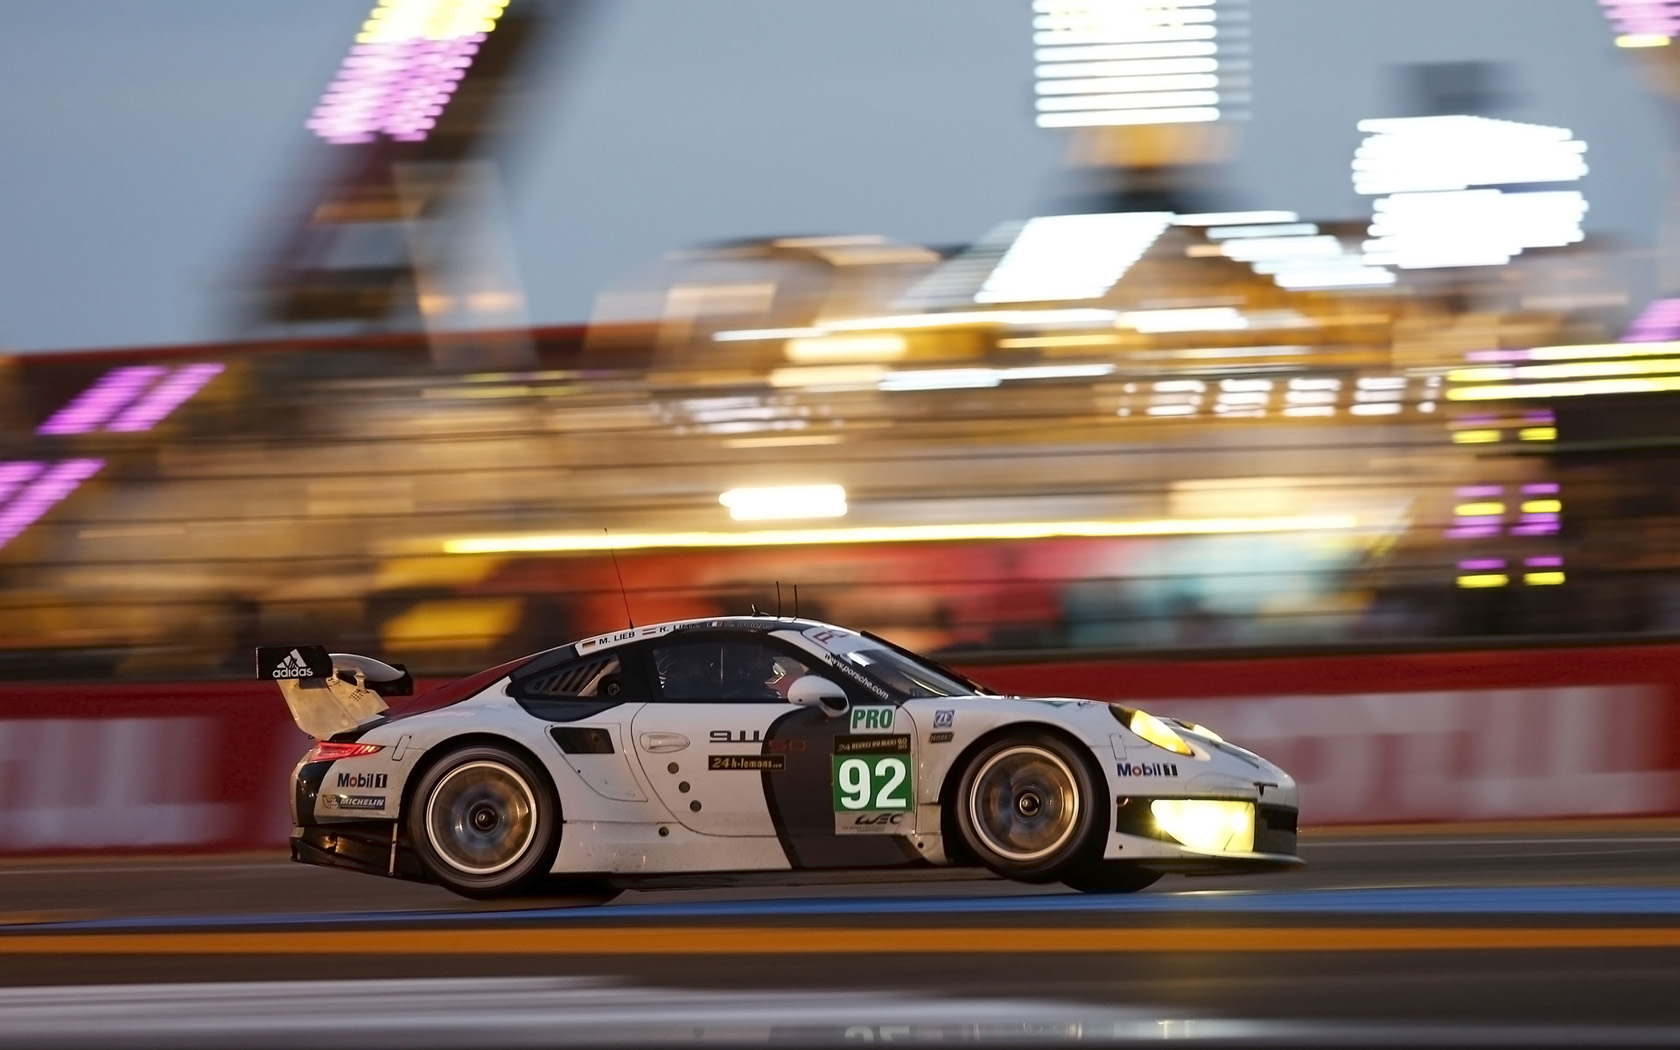 2013-Porsche-911-GT3-RSR-at-Le-Mans-AG-Team-Manthey-4-1680x1050